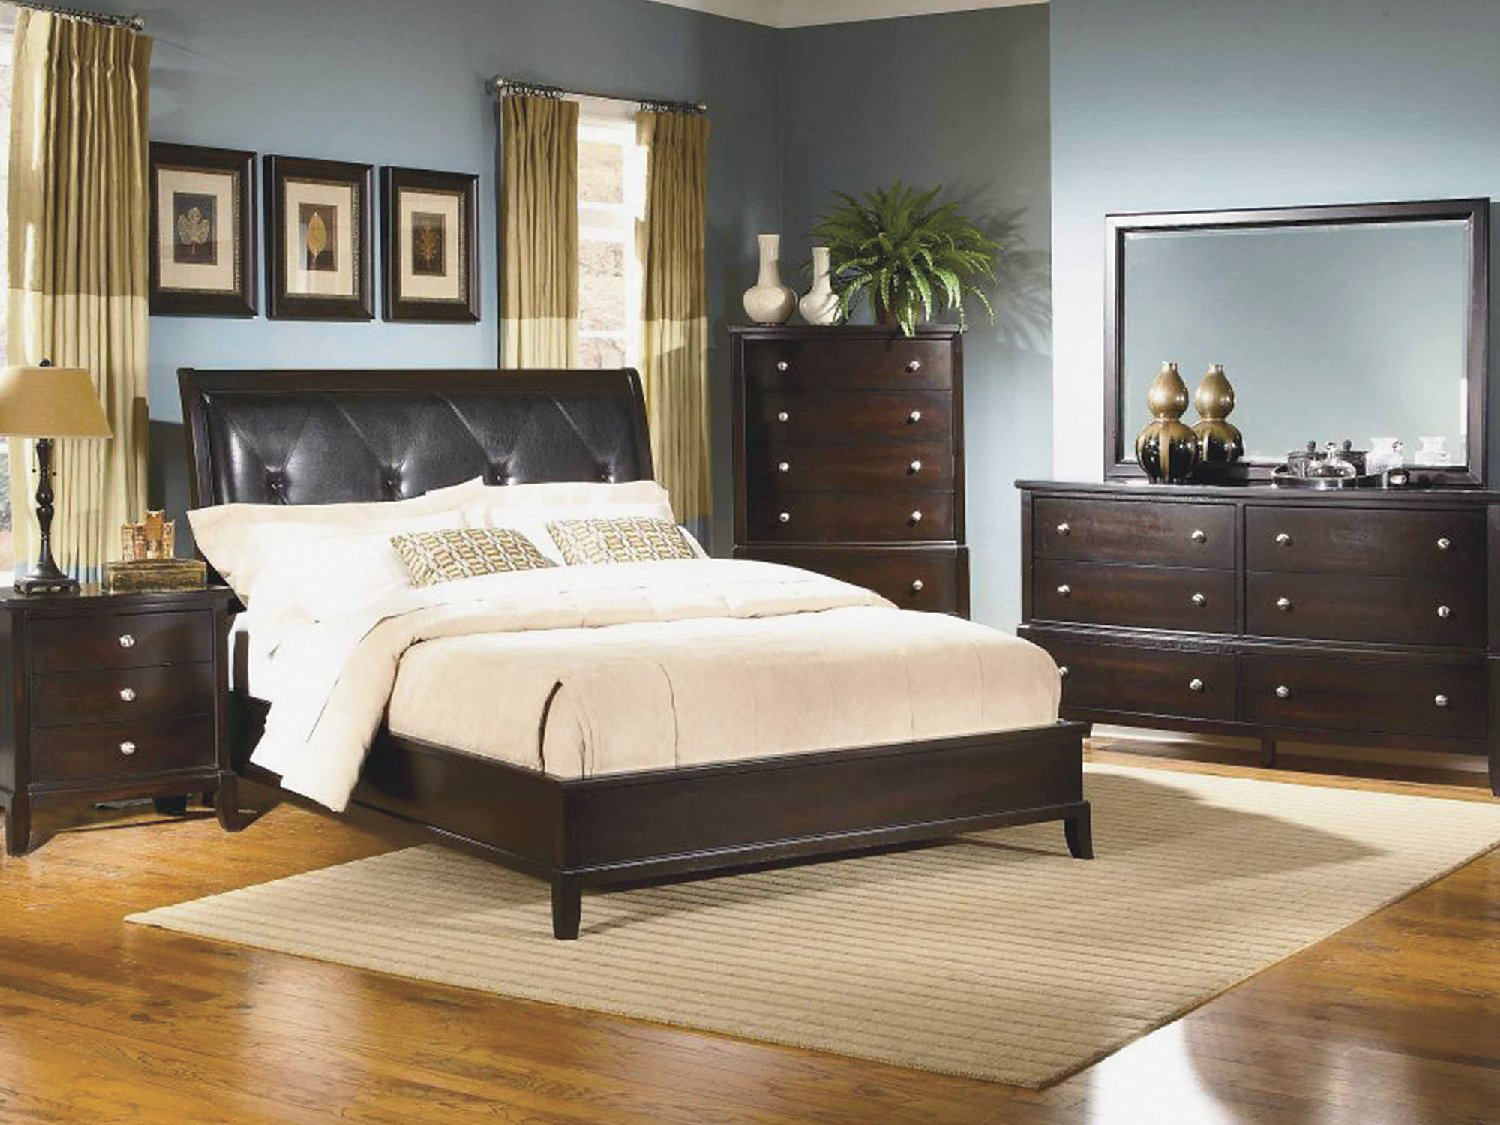 elements queen bed - Queen Bedroom Frames